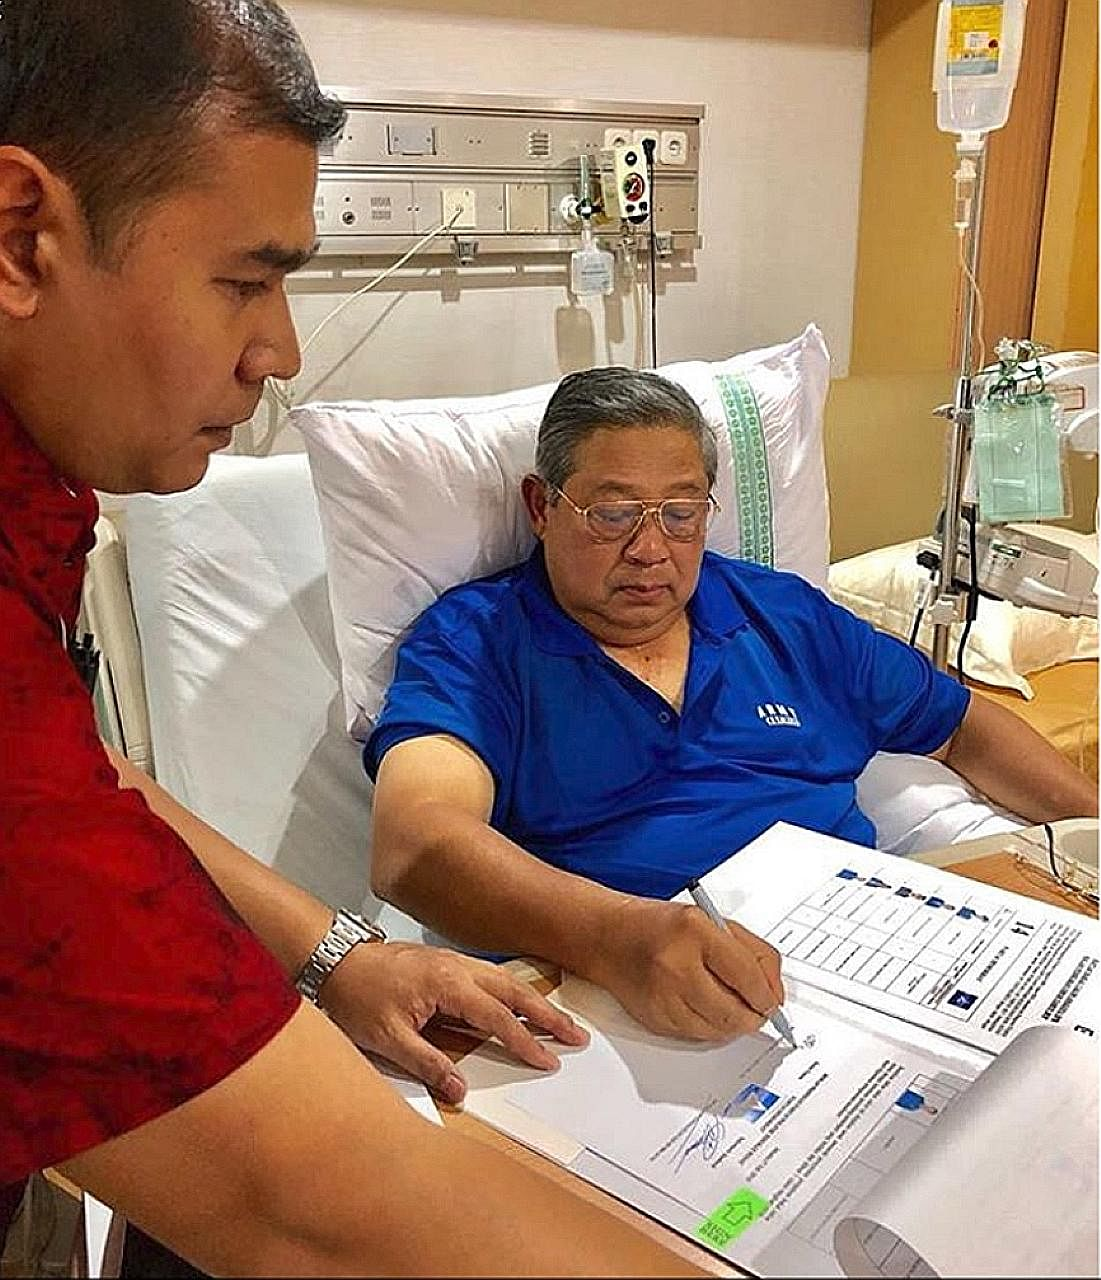 Democratic Party founder and former Indonesian president Susilo Bambang Yudhoyono working from his hospital bed after he was admitted for exhaustion on Tuesday. His meeting with Gerindra Party chief Prabowo last night has been postponed.